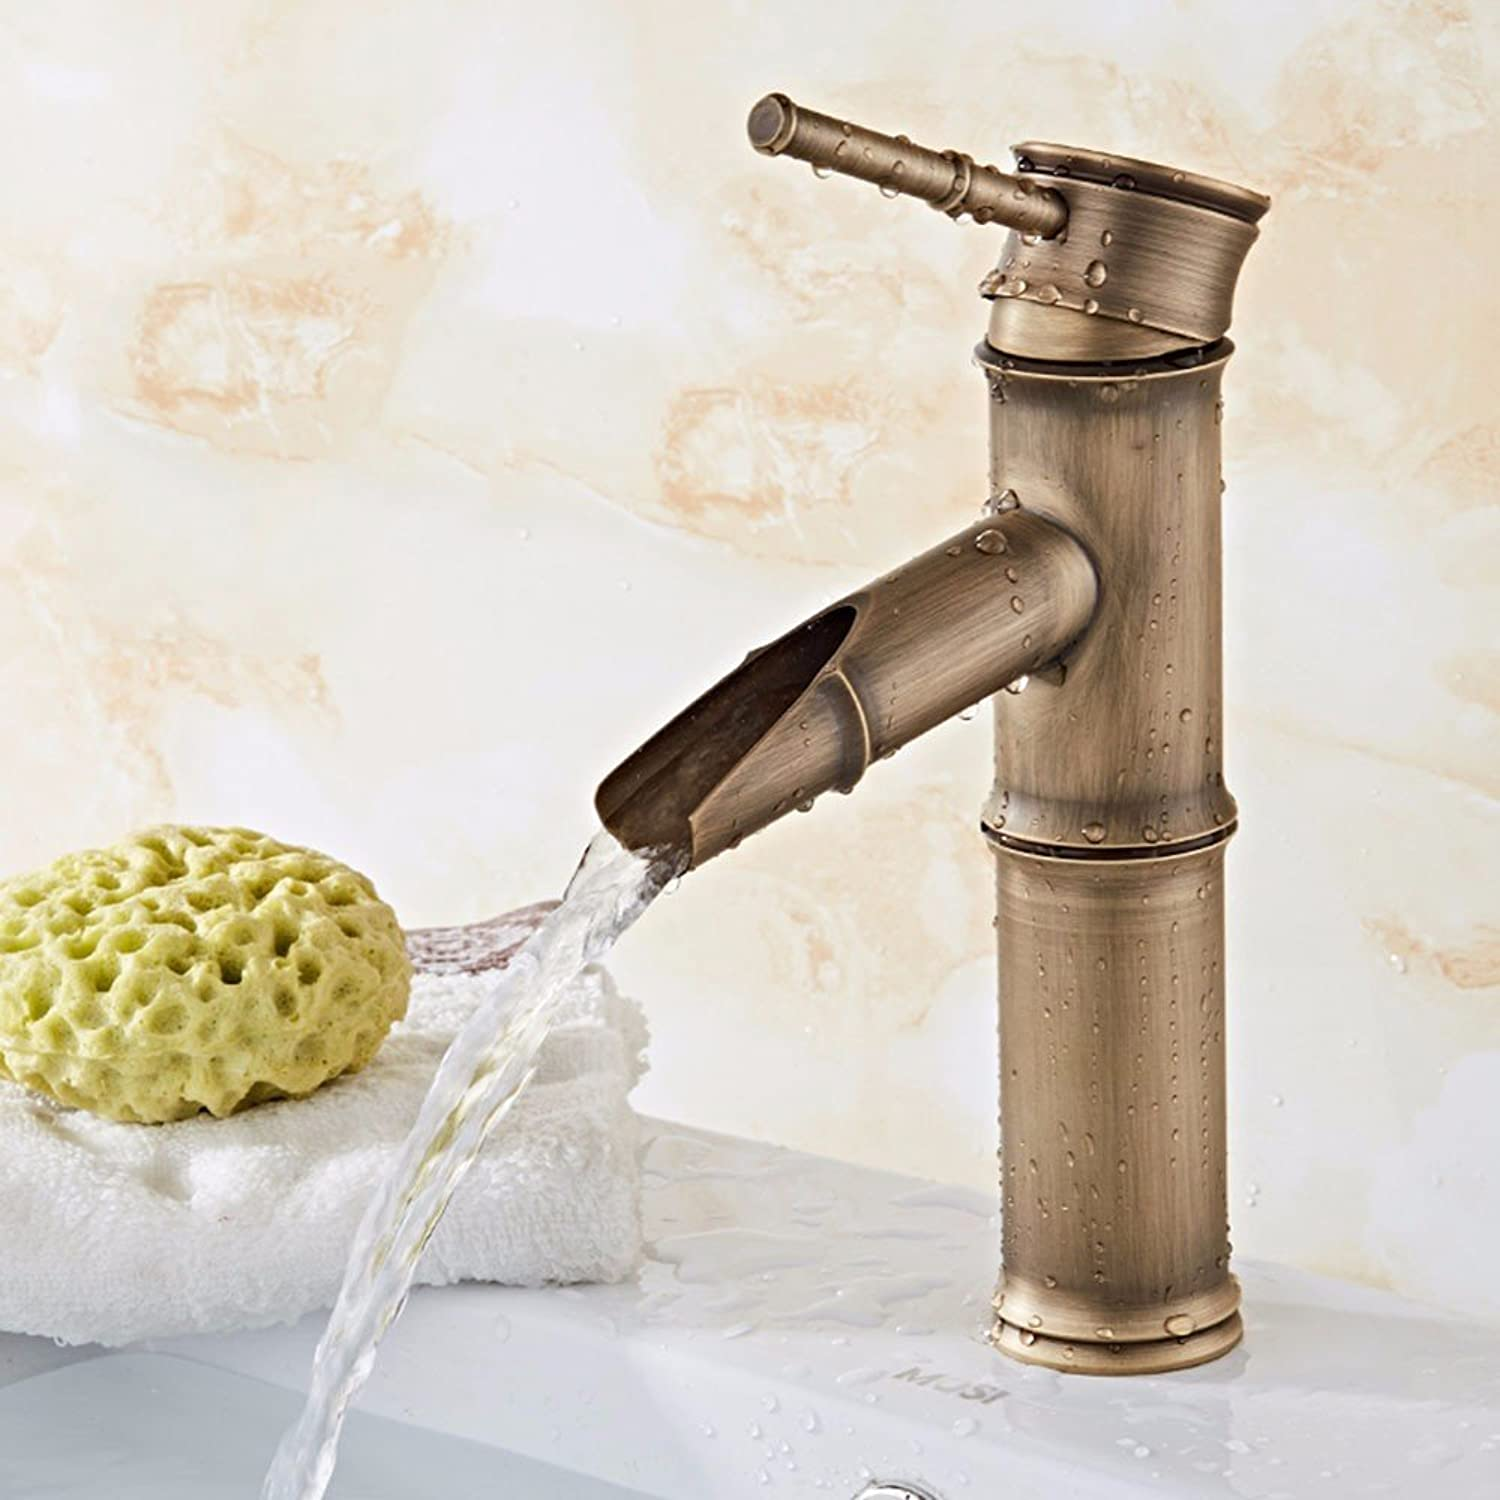 LHbox Basin Mixer Tap Bathroom Sink Faucet European retro style, copper, bathrooms, hot and cold, the basin and sink faucets, 2